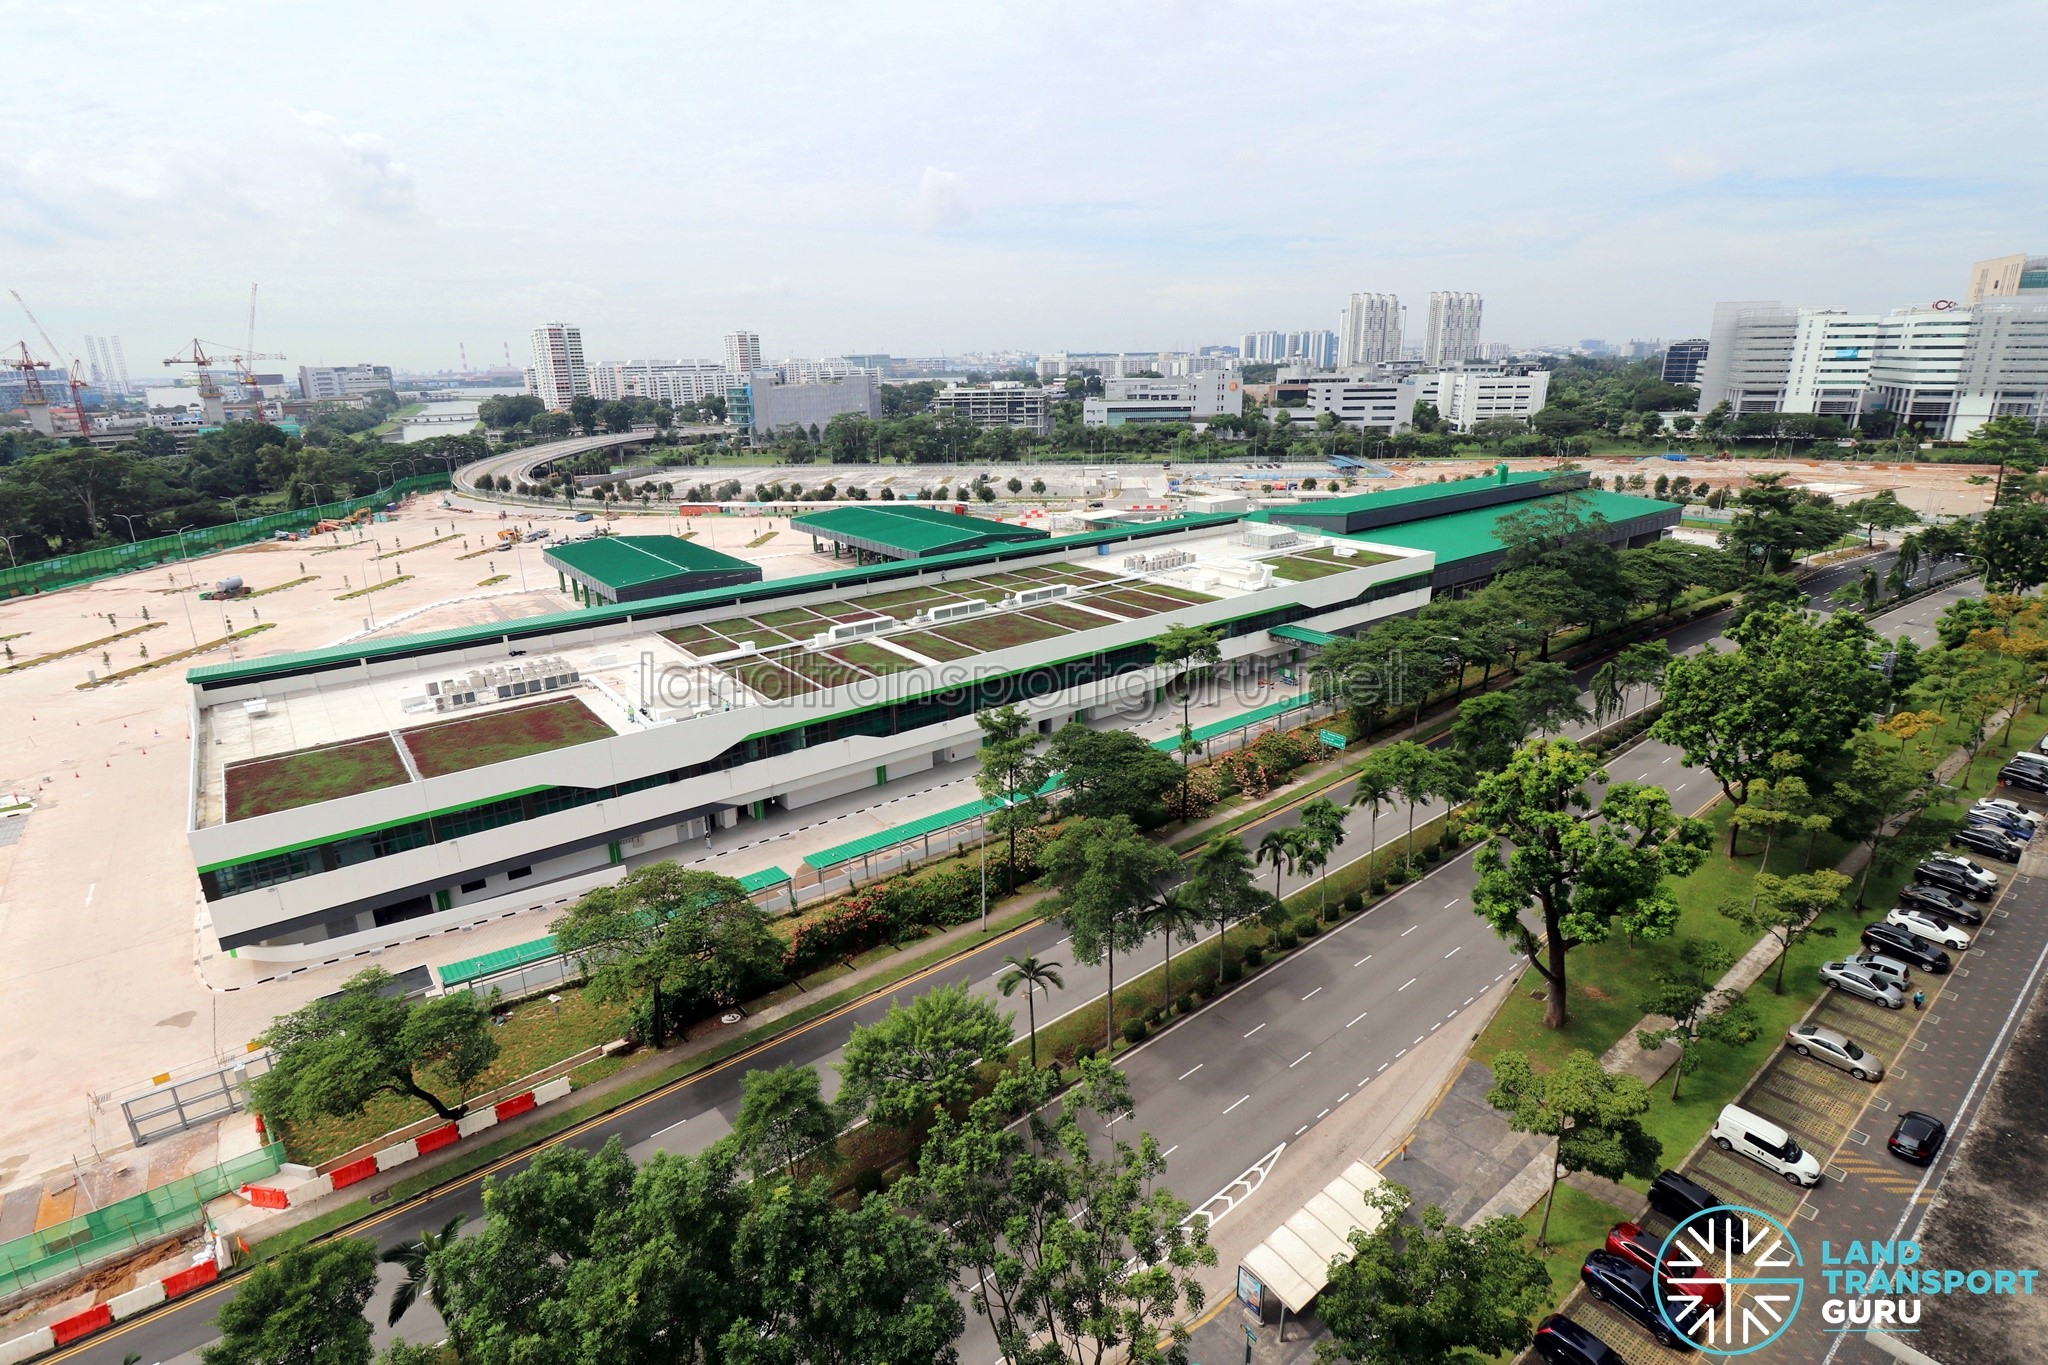 Ulu Pandan Bus Depot: Overhead view (Dec 2017)